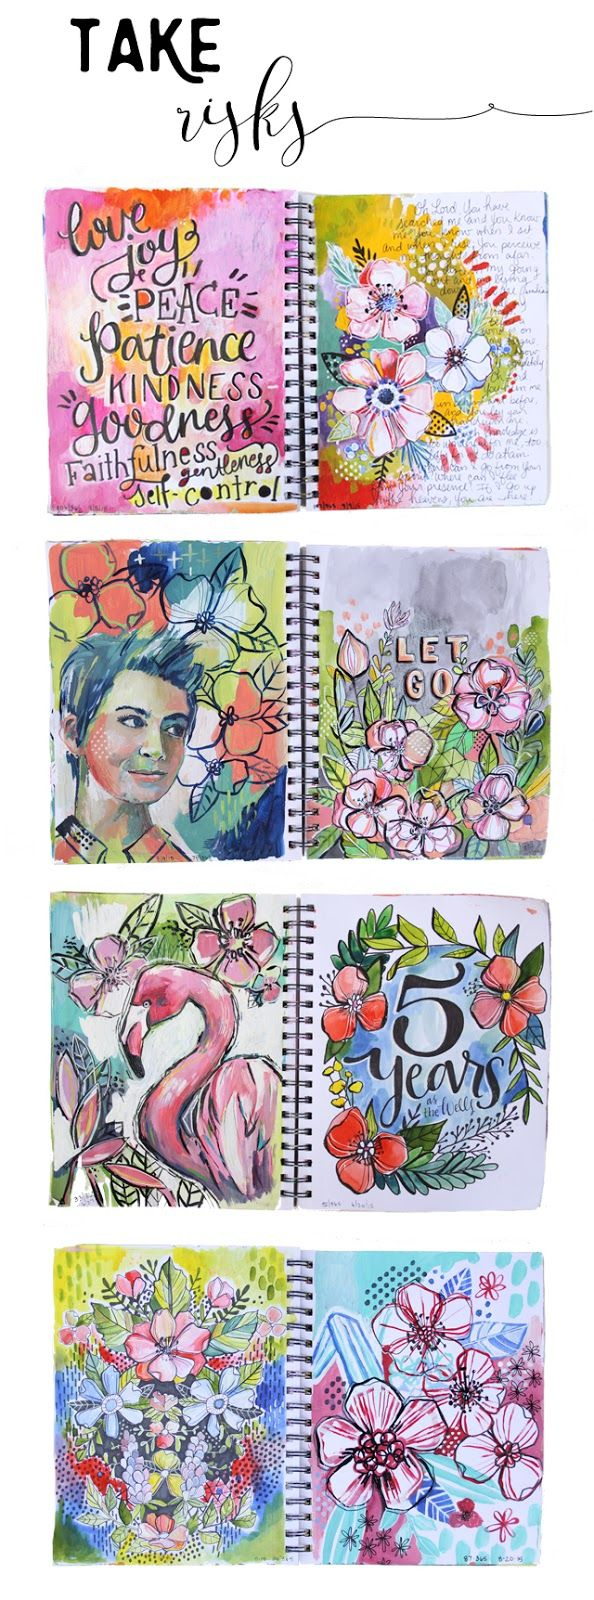 Hello everyone! It's Megan from Makewells here again and today I'm excited to share a glimpse into my personal sketchbook!  I'...